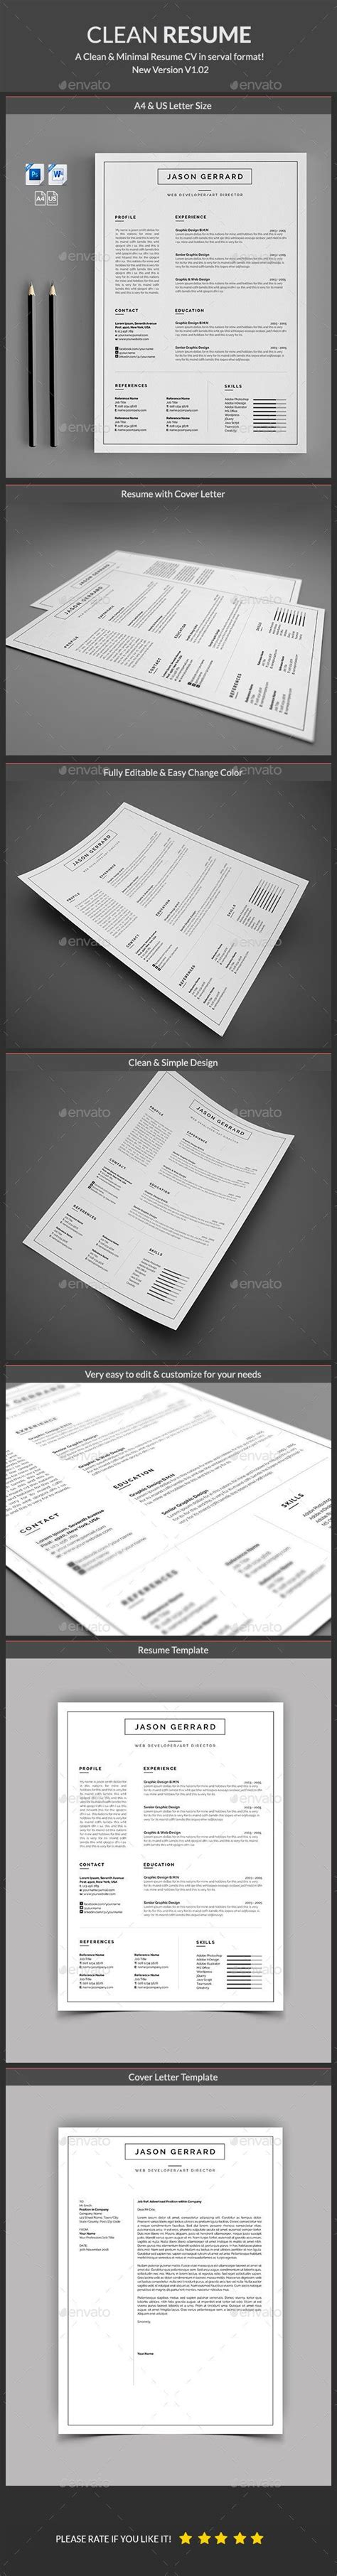 resume template psd ms word here http